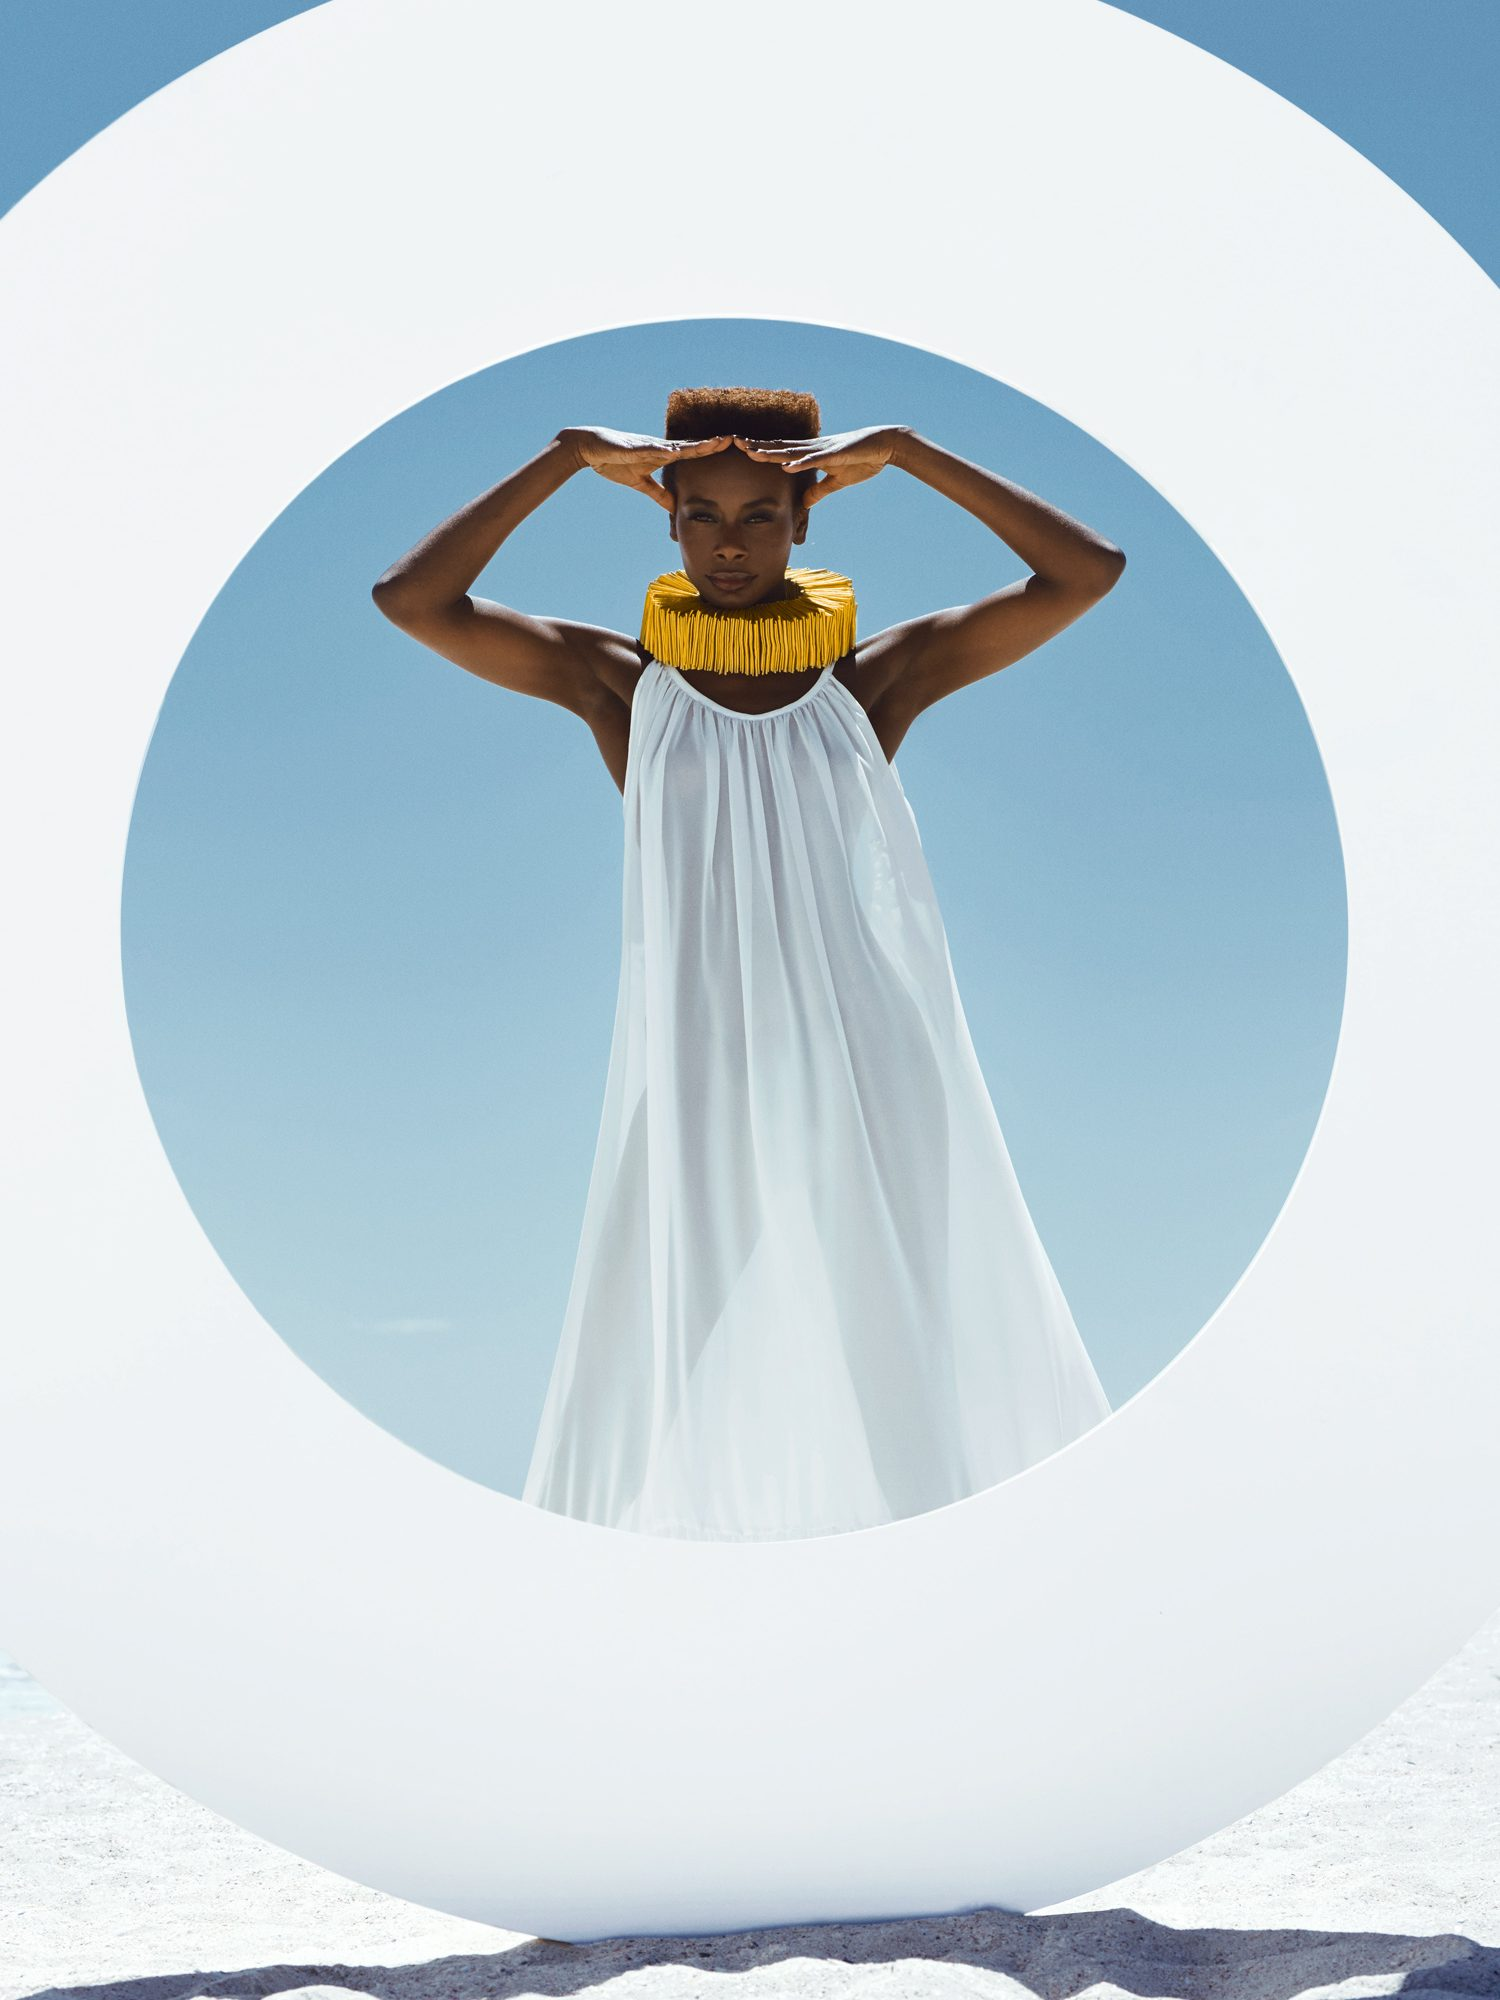 astrid obert photography presents ONE editorial fashion beach black woman dresses designer